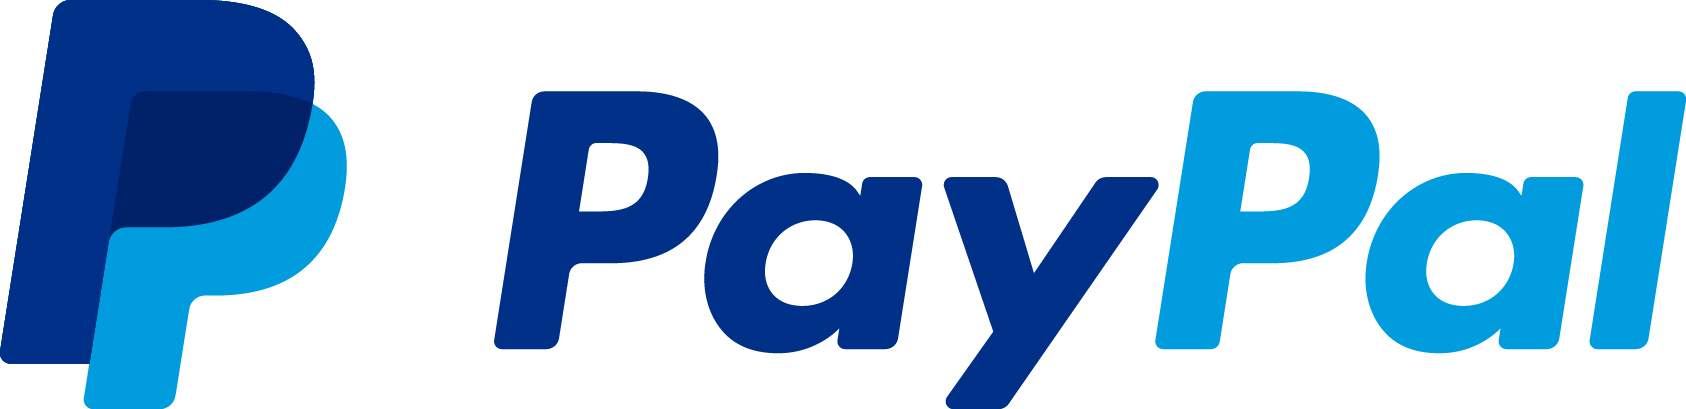 payparl